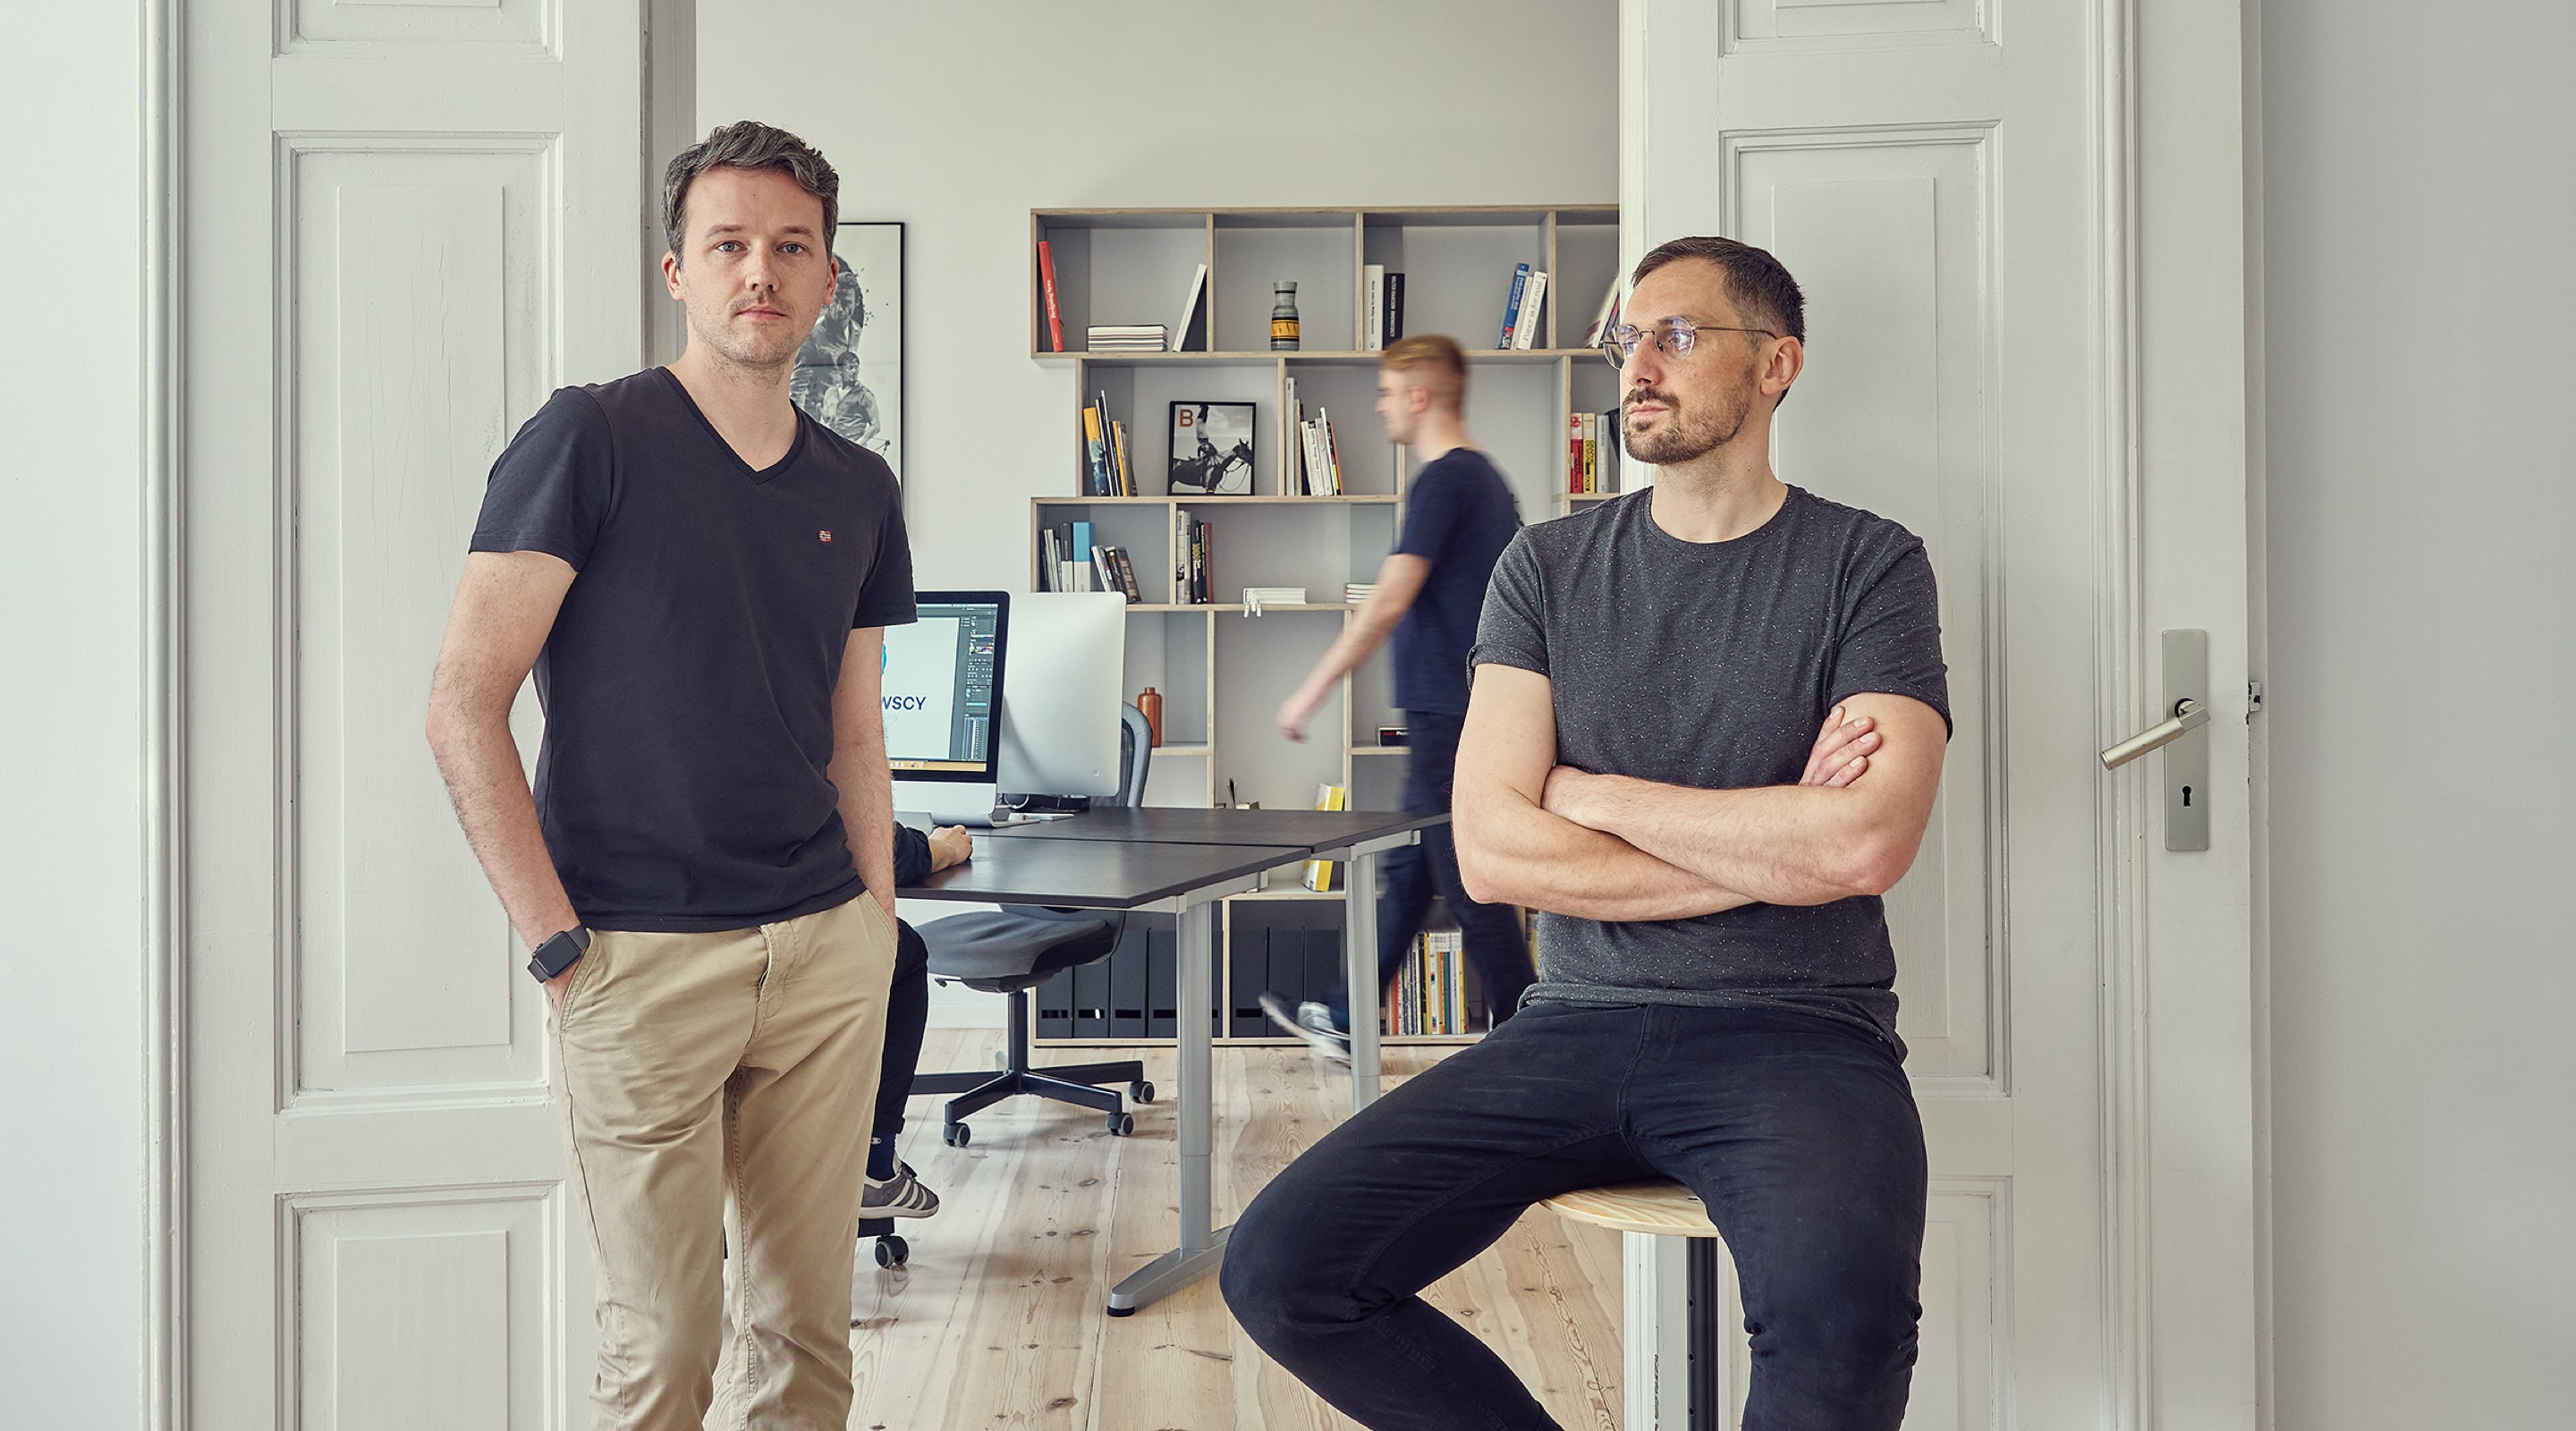 Maciej Mach, Michał Mierzwa - Owners of Uniforma Studio